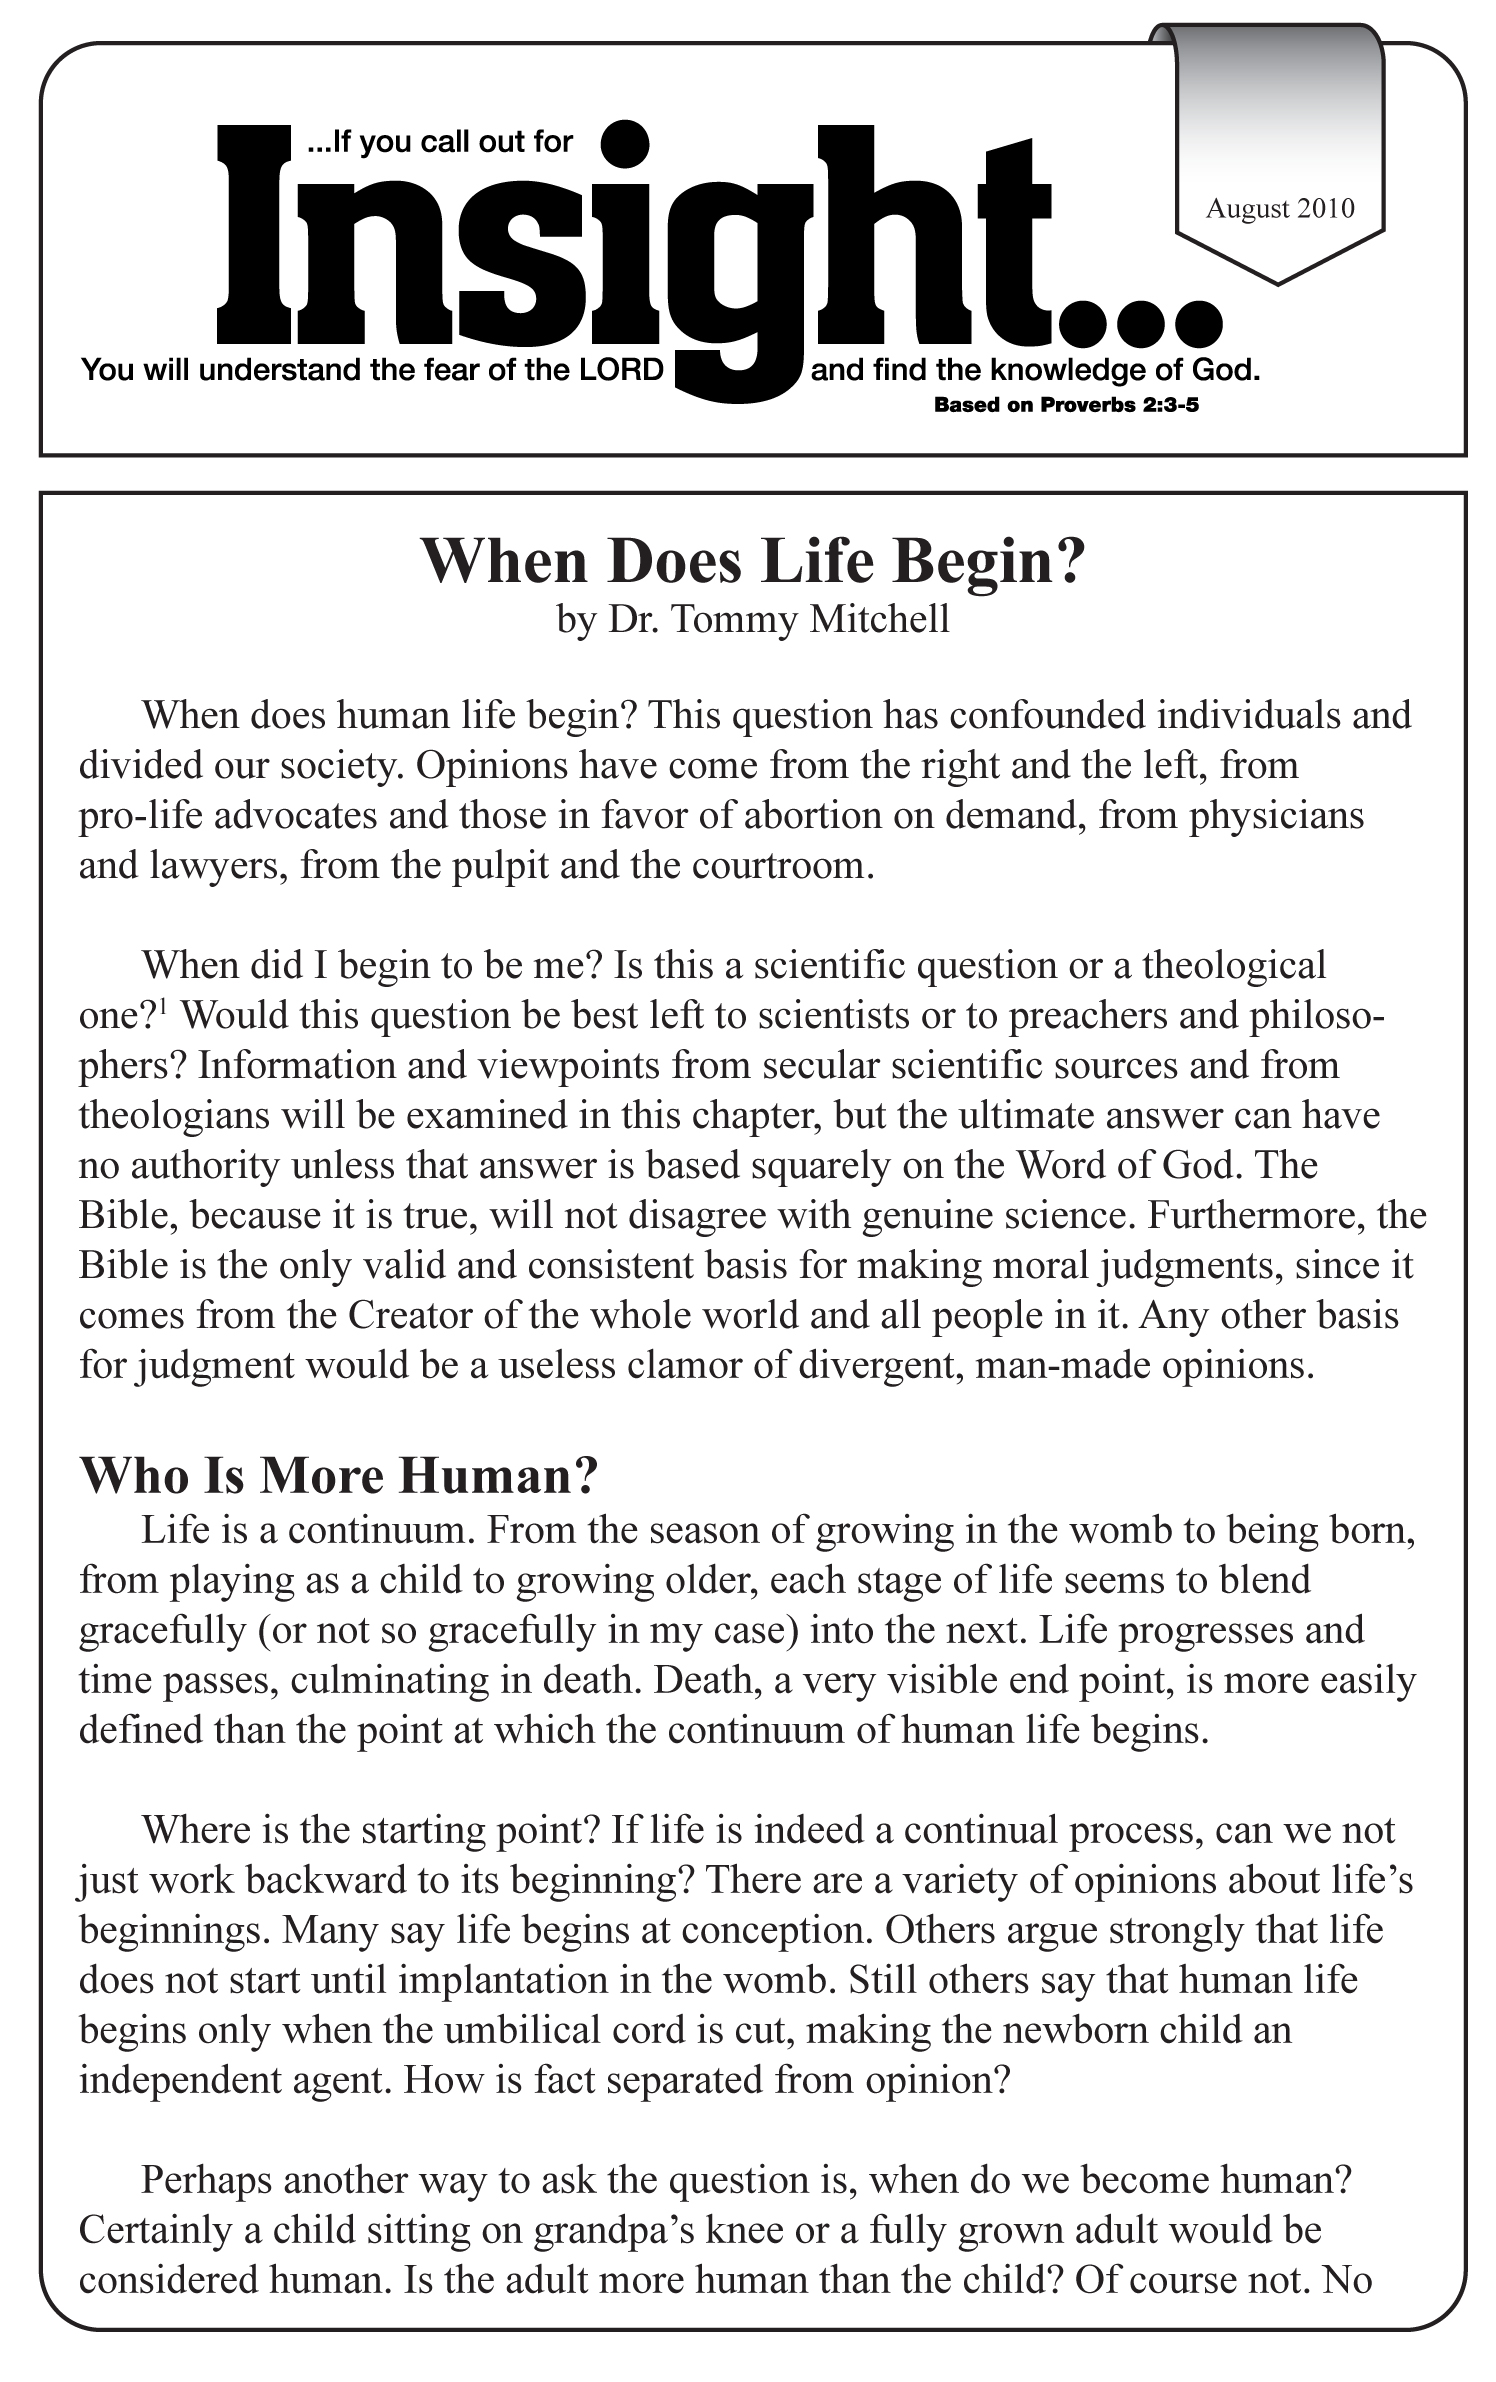 when does life begin pro life essay When does human life begin this question has confounded individuals and divided our society opinions have come from the right and the left, from pro-life advocates and those in favor of abortion on demand, from physicians.